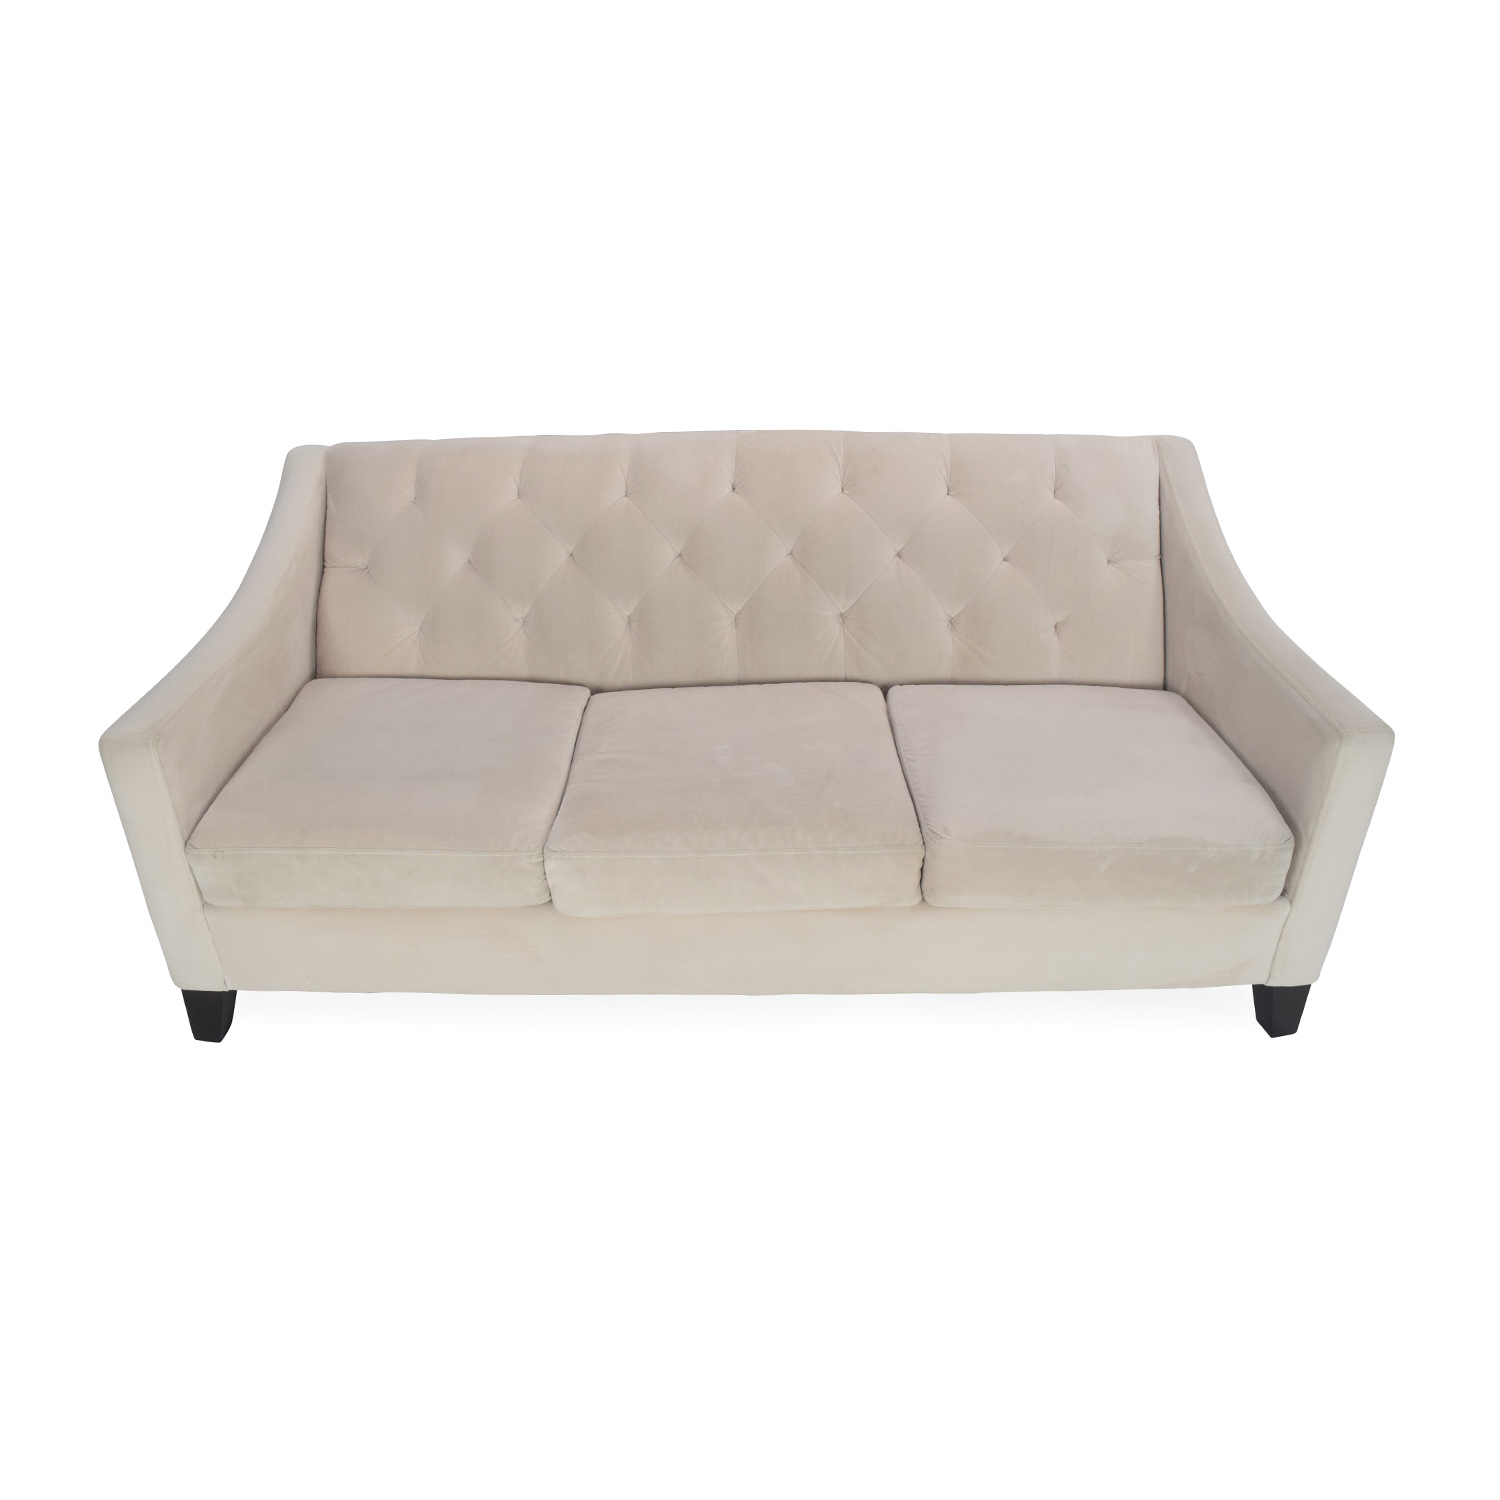 64% OFF Domain Domain Green Skirted Couch Sofas